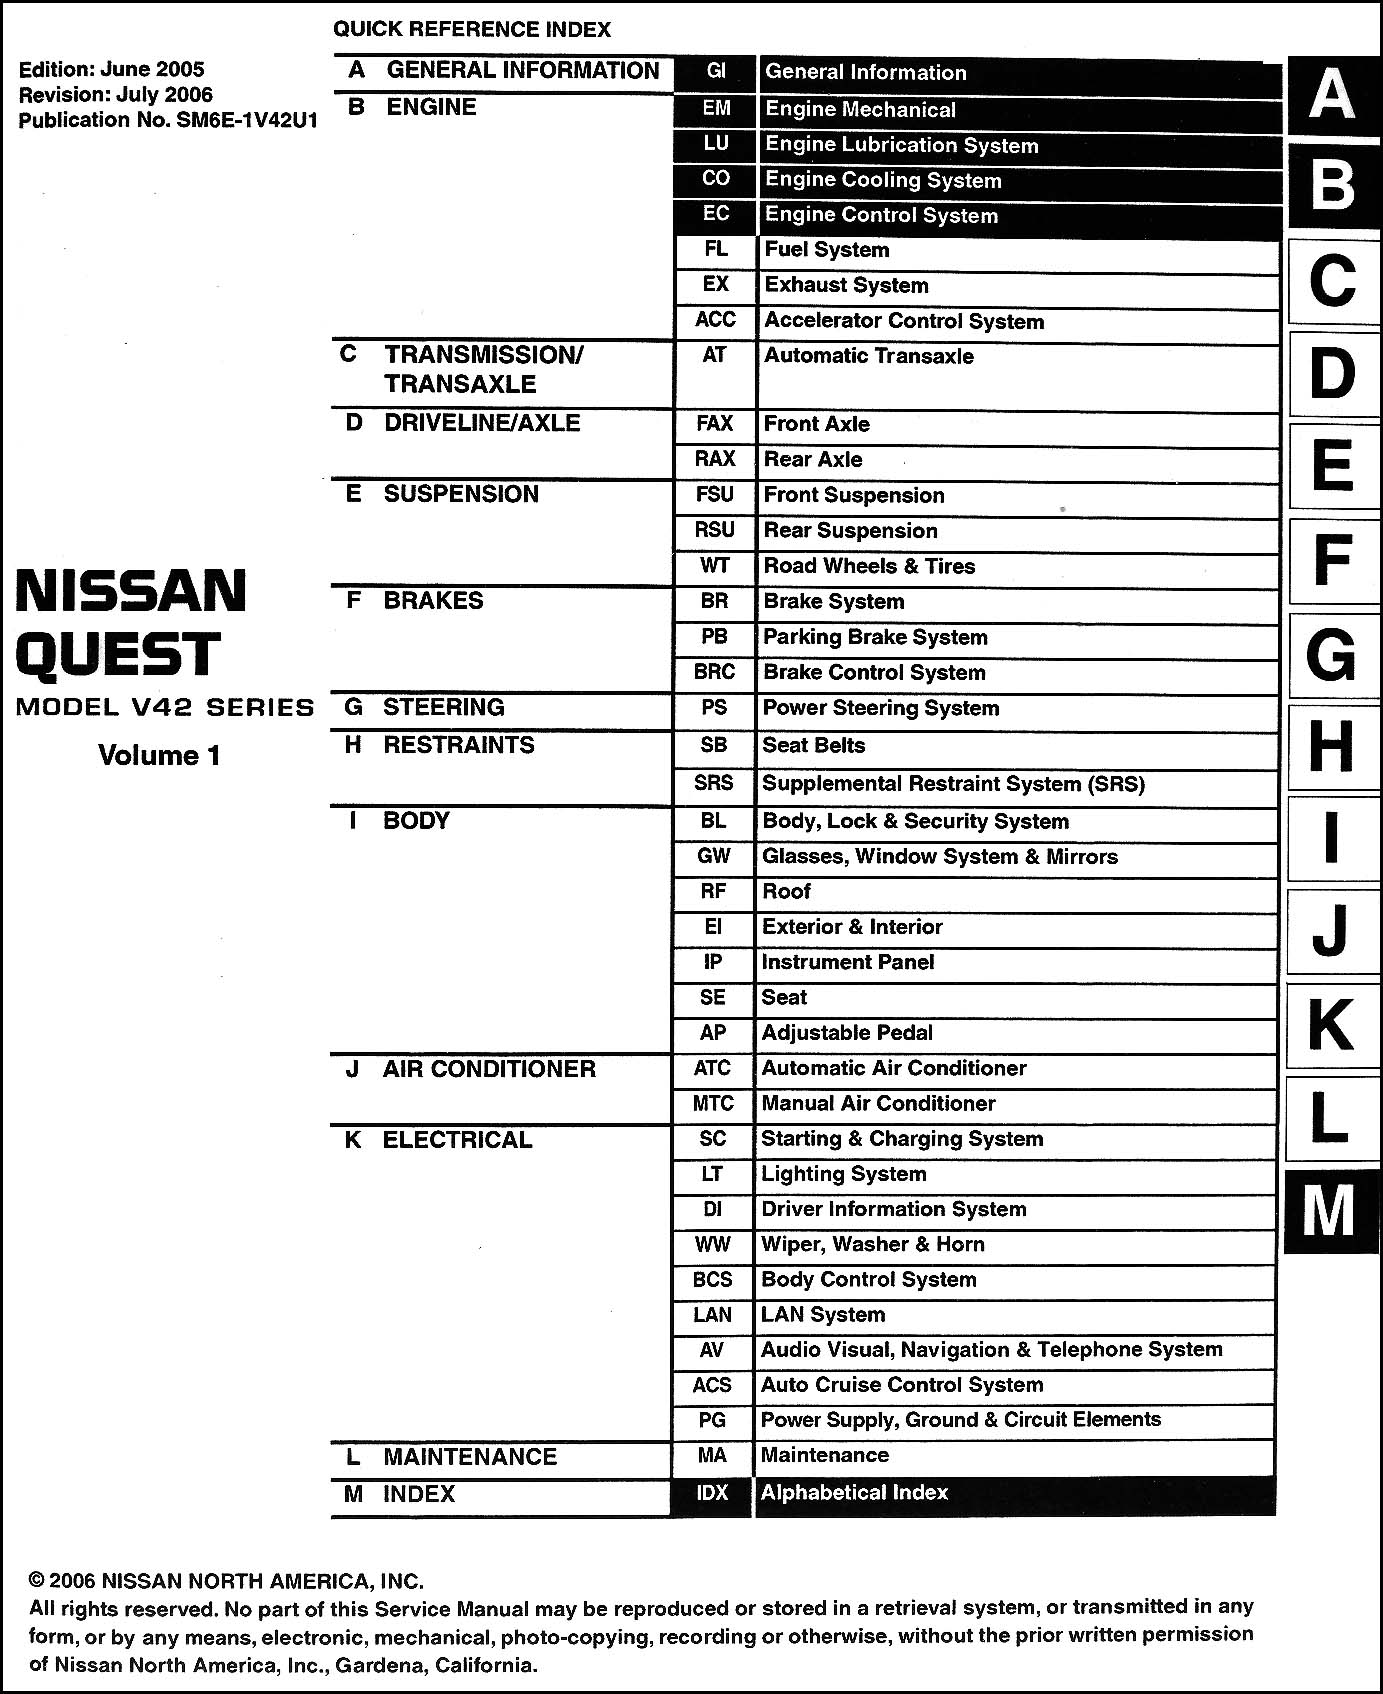 94 Nissan Quest Fuse Diagram Schematic Wiring Diagrams \u2022 2009 Maxima Radio  Wiring Nissan Quest Stereo Wiring Diagram